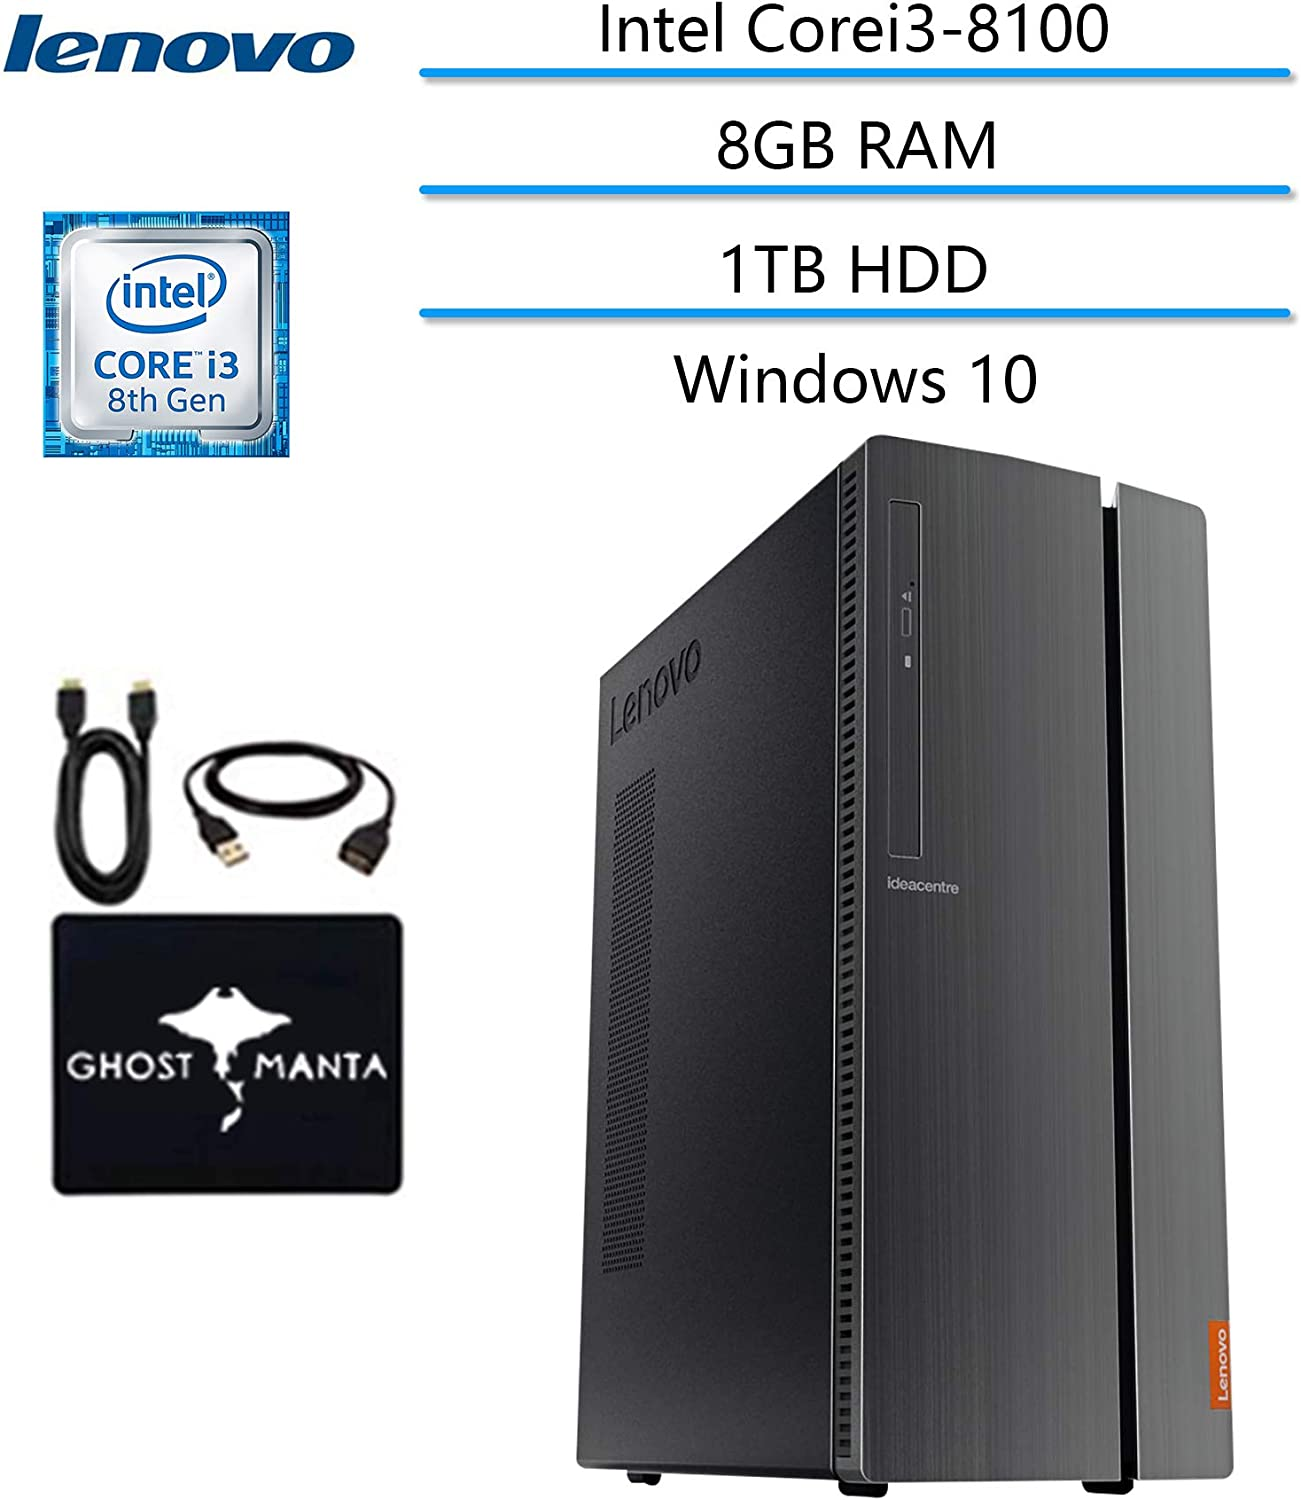 Lenovo ideacentre 510A Business Desktop Newest Computer, Intel Core i3-8100 Processor (6M Cache,3.60 GHz), 8GB RAM 1TB HDD, 7200rpm DVD-RW Win 10 w/Ghost Manta Accessories